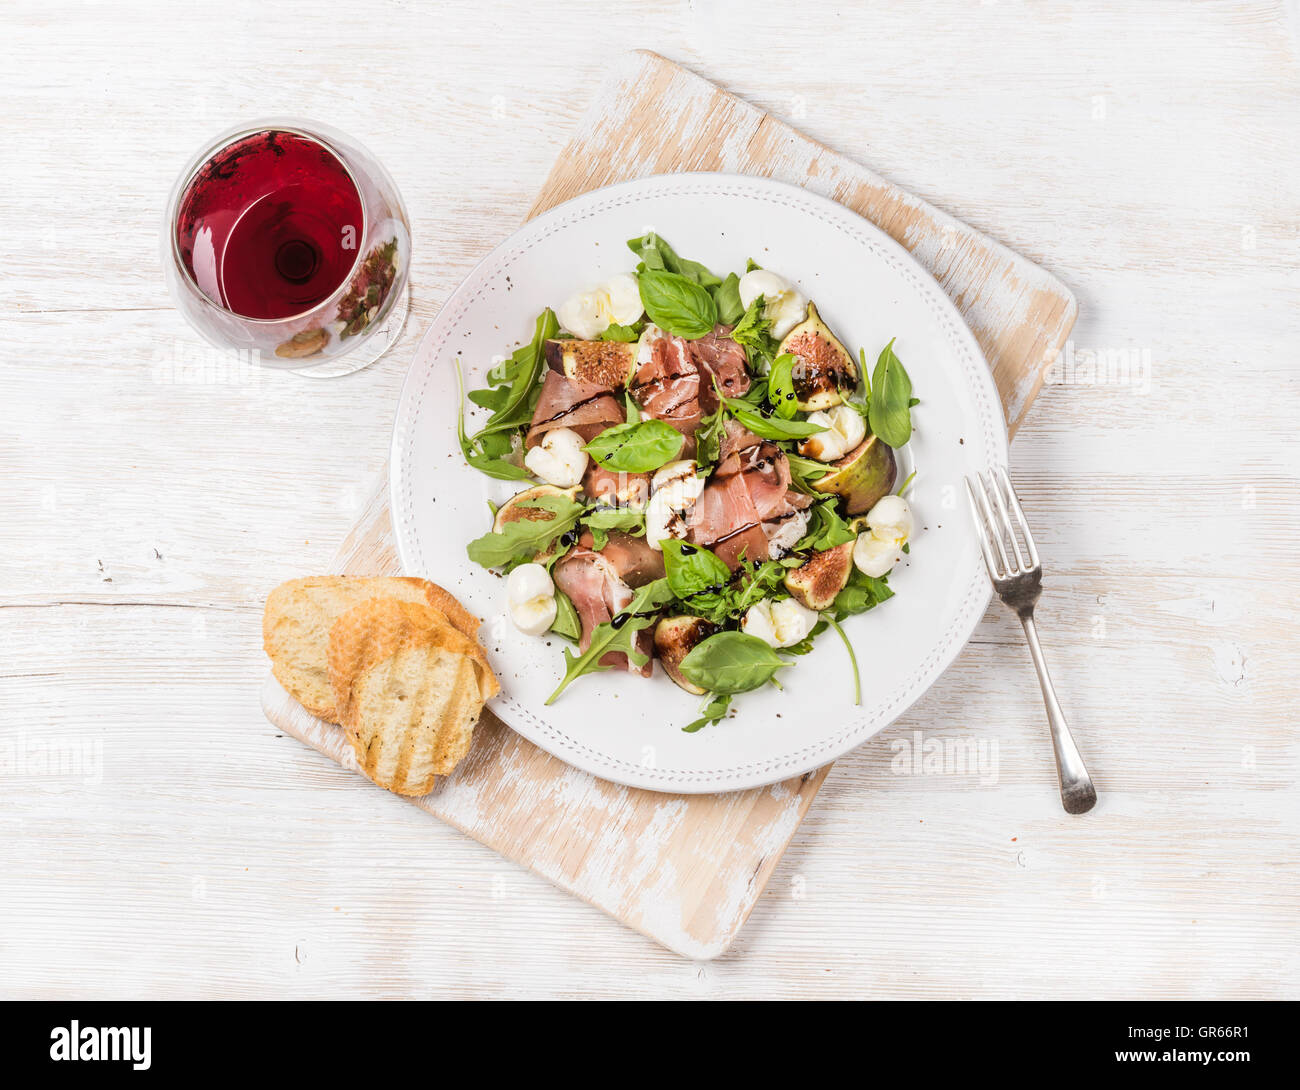 Prosciutto, arugula, figs salad with bread and glass of red - Stock Image